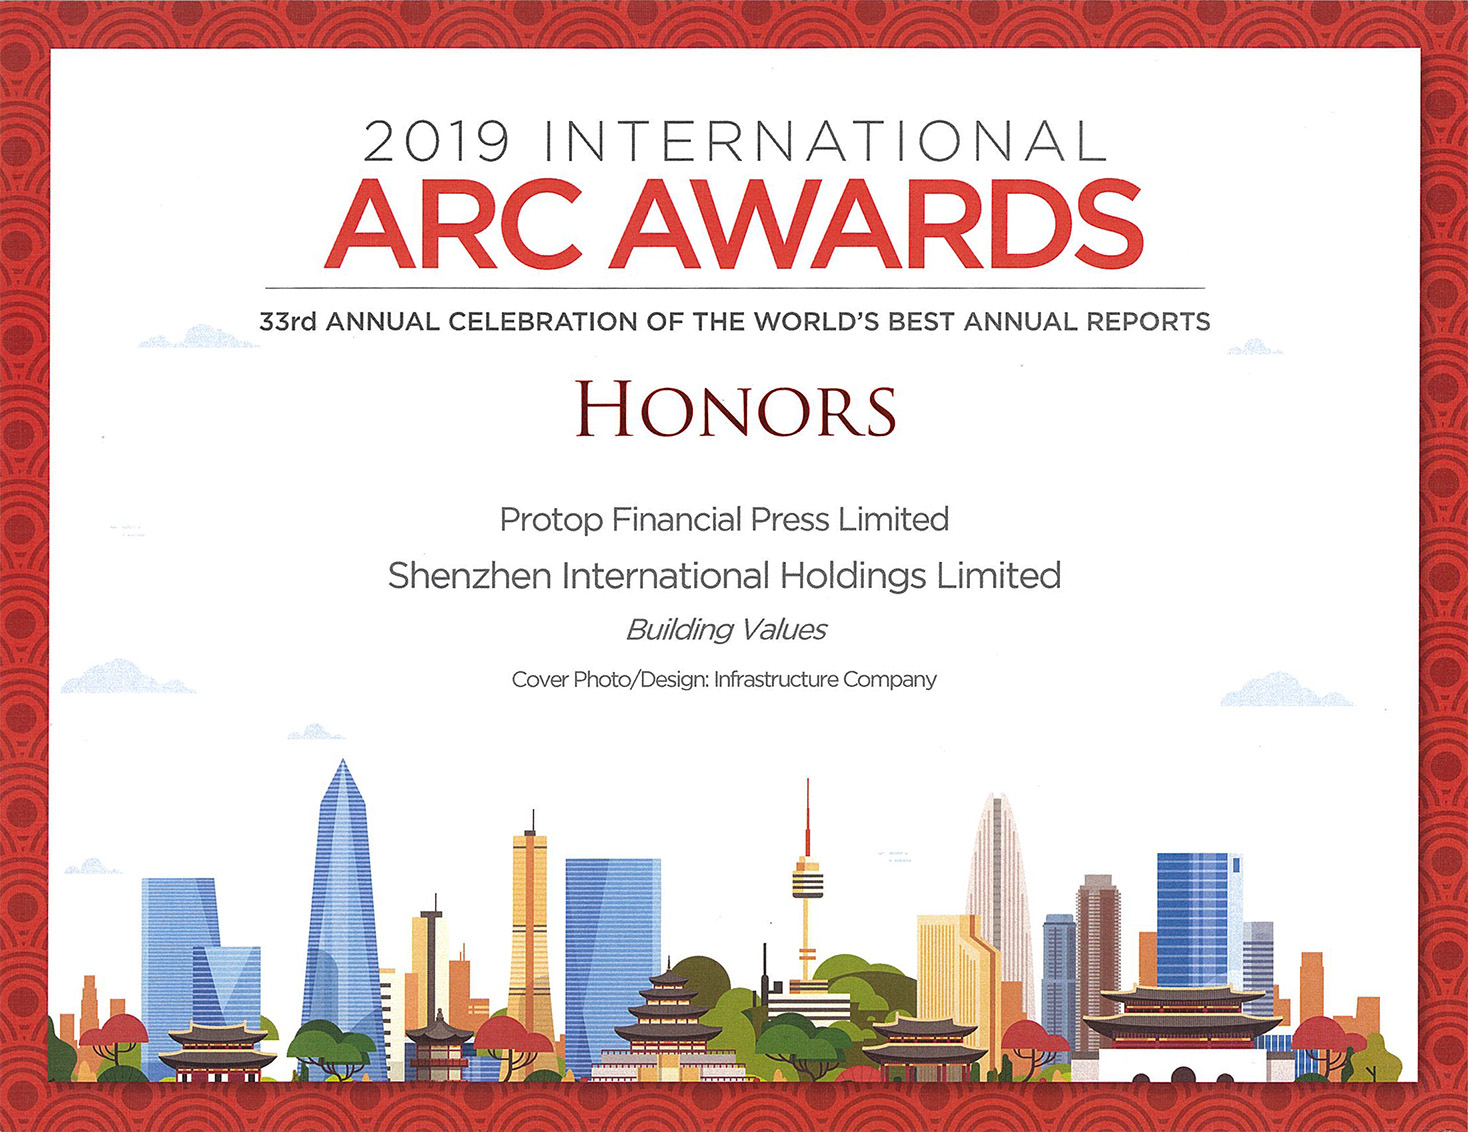 深圳國際控股有限公司 – 2019 ARC AWARDS HONORS Cover Photo/Design: Infrastructure Company